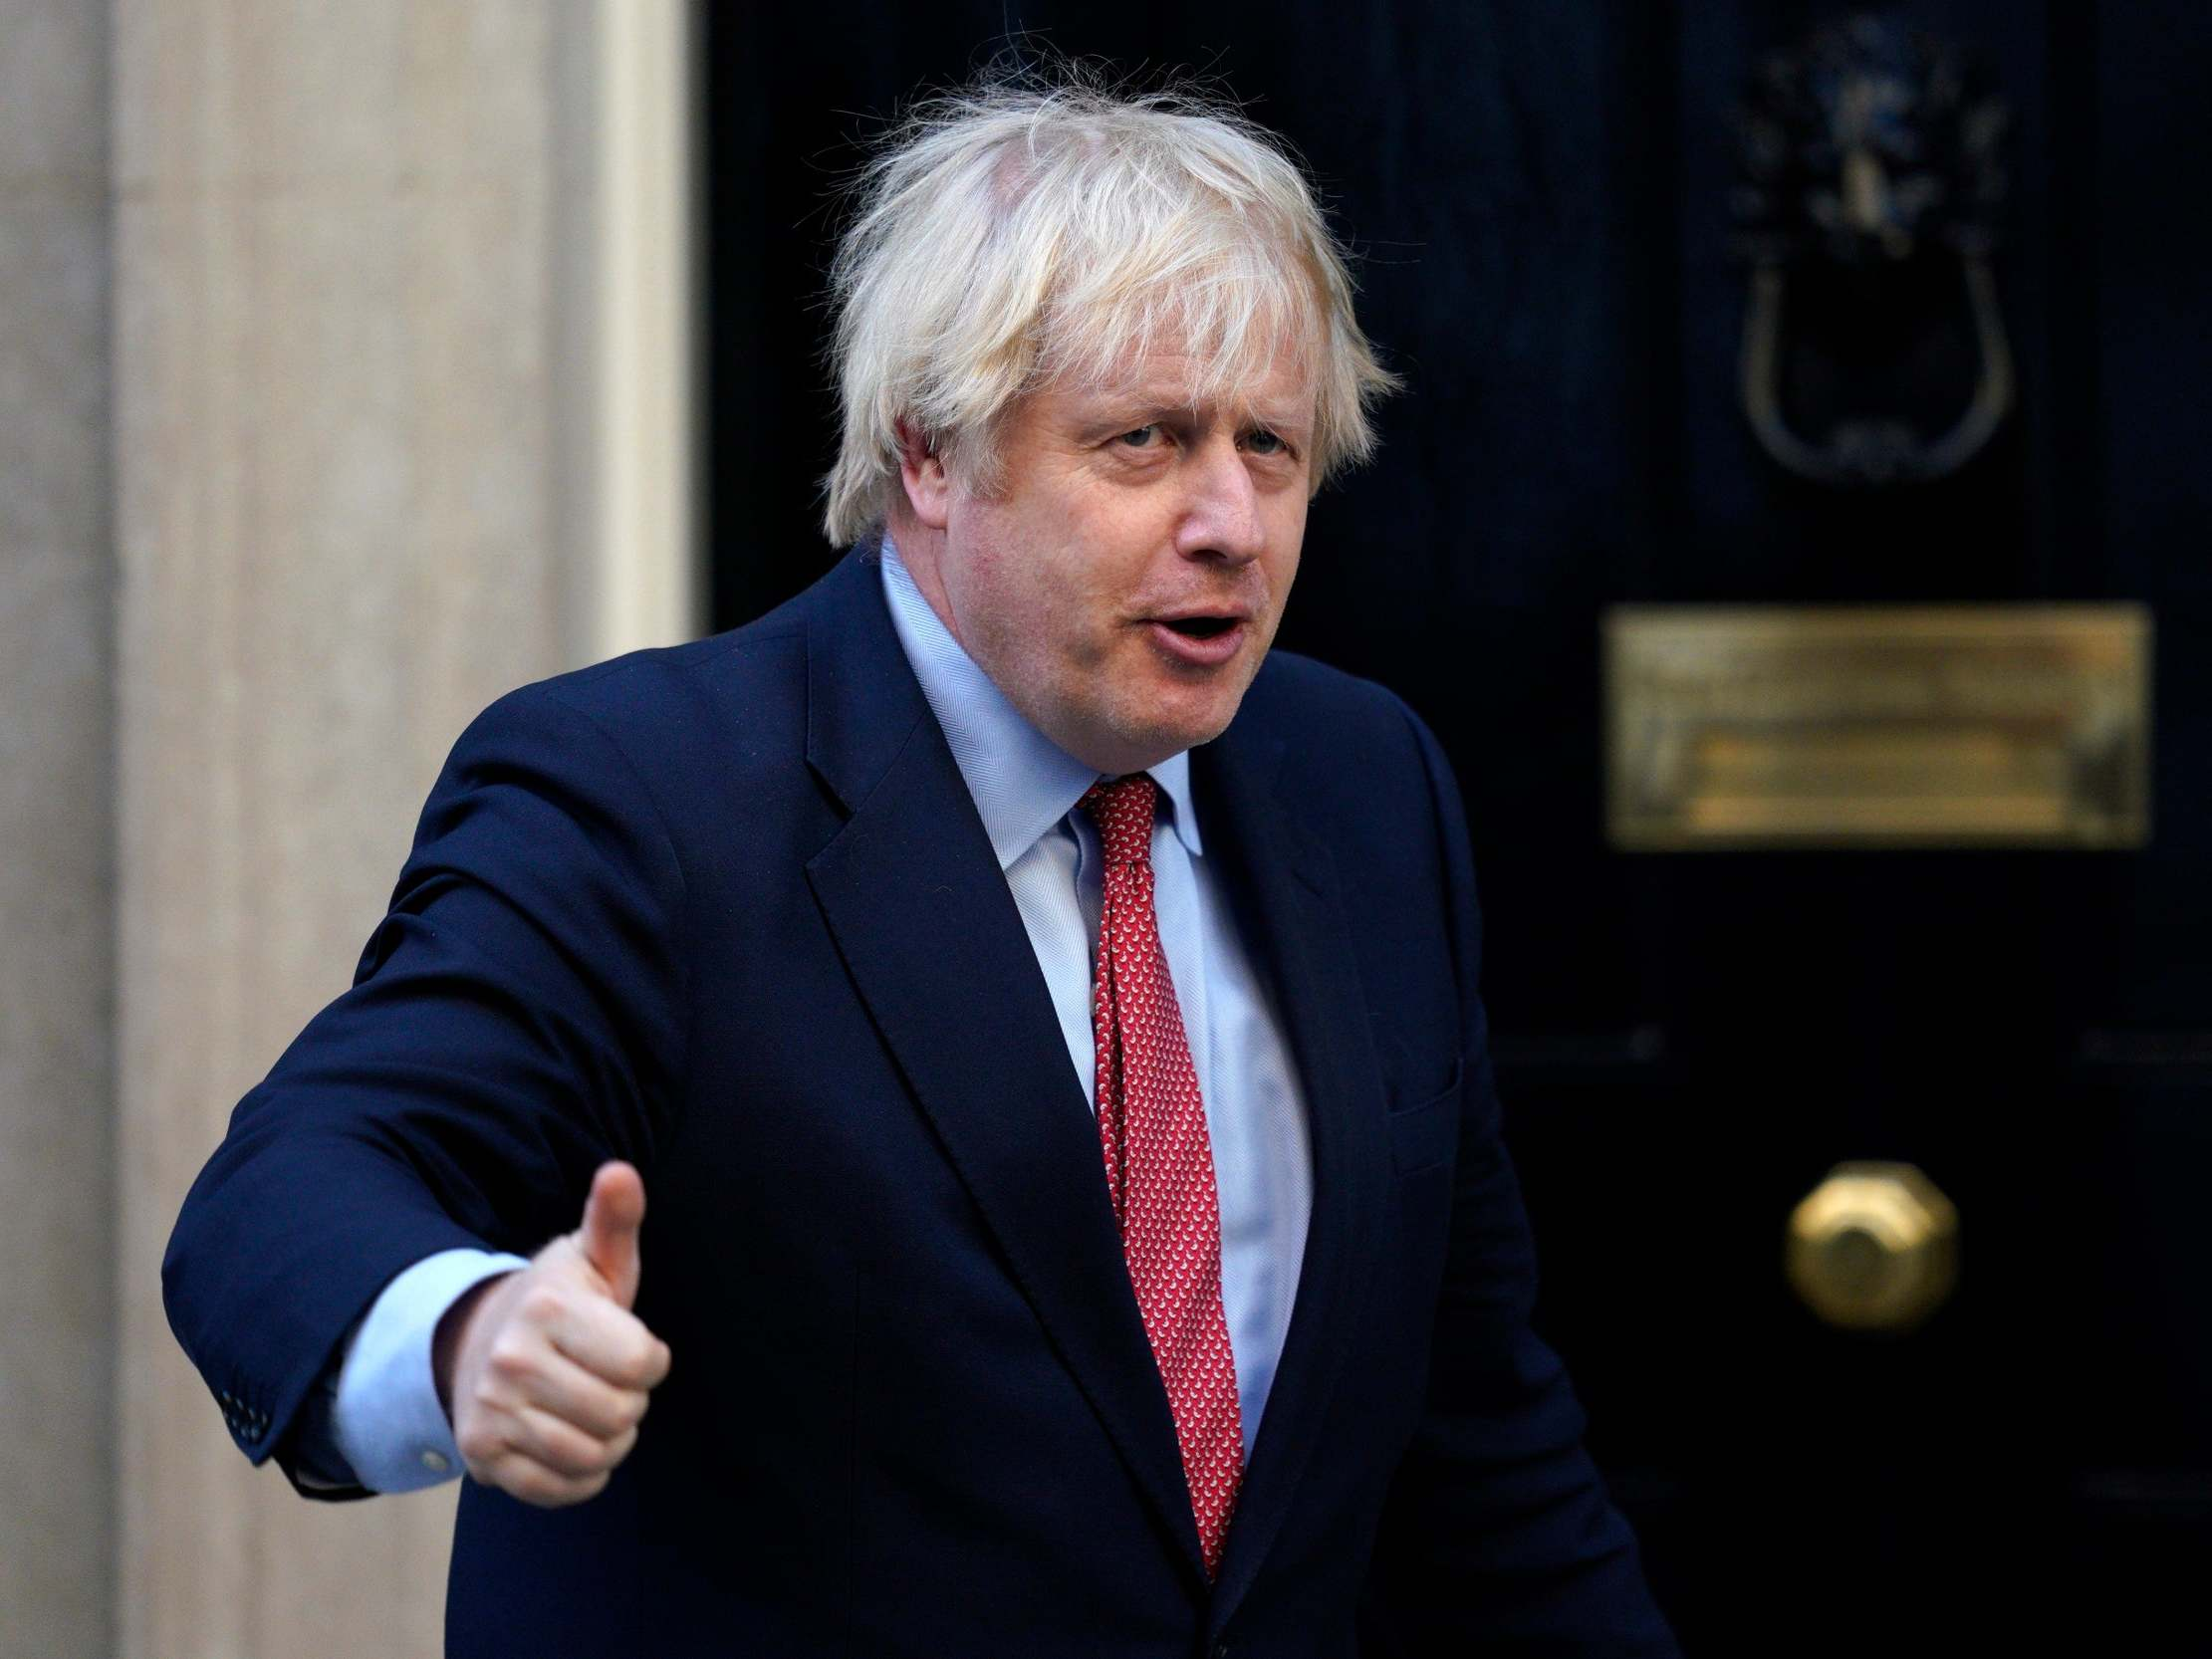 Boris Johnson news – live: Government denies 'playing silly games' over test and trace data, as Tories join revolt over plans to scrap remote parliament